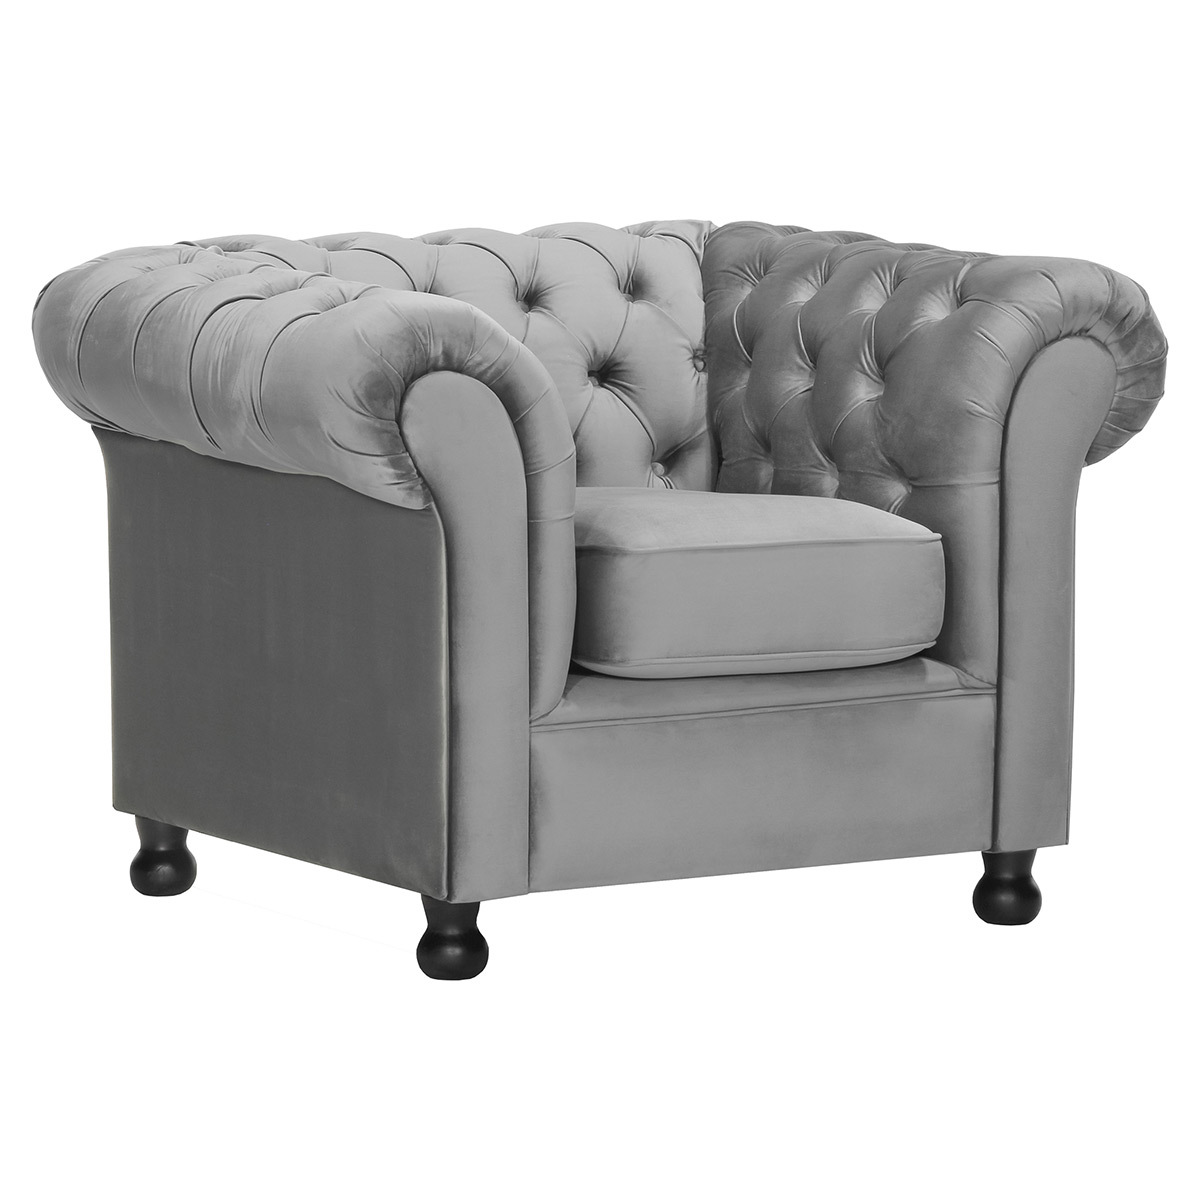 Poltrona in velluto Grigio scuro CHESTERFIELD